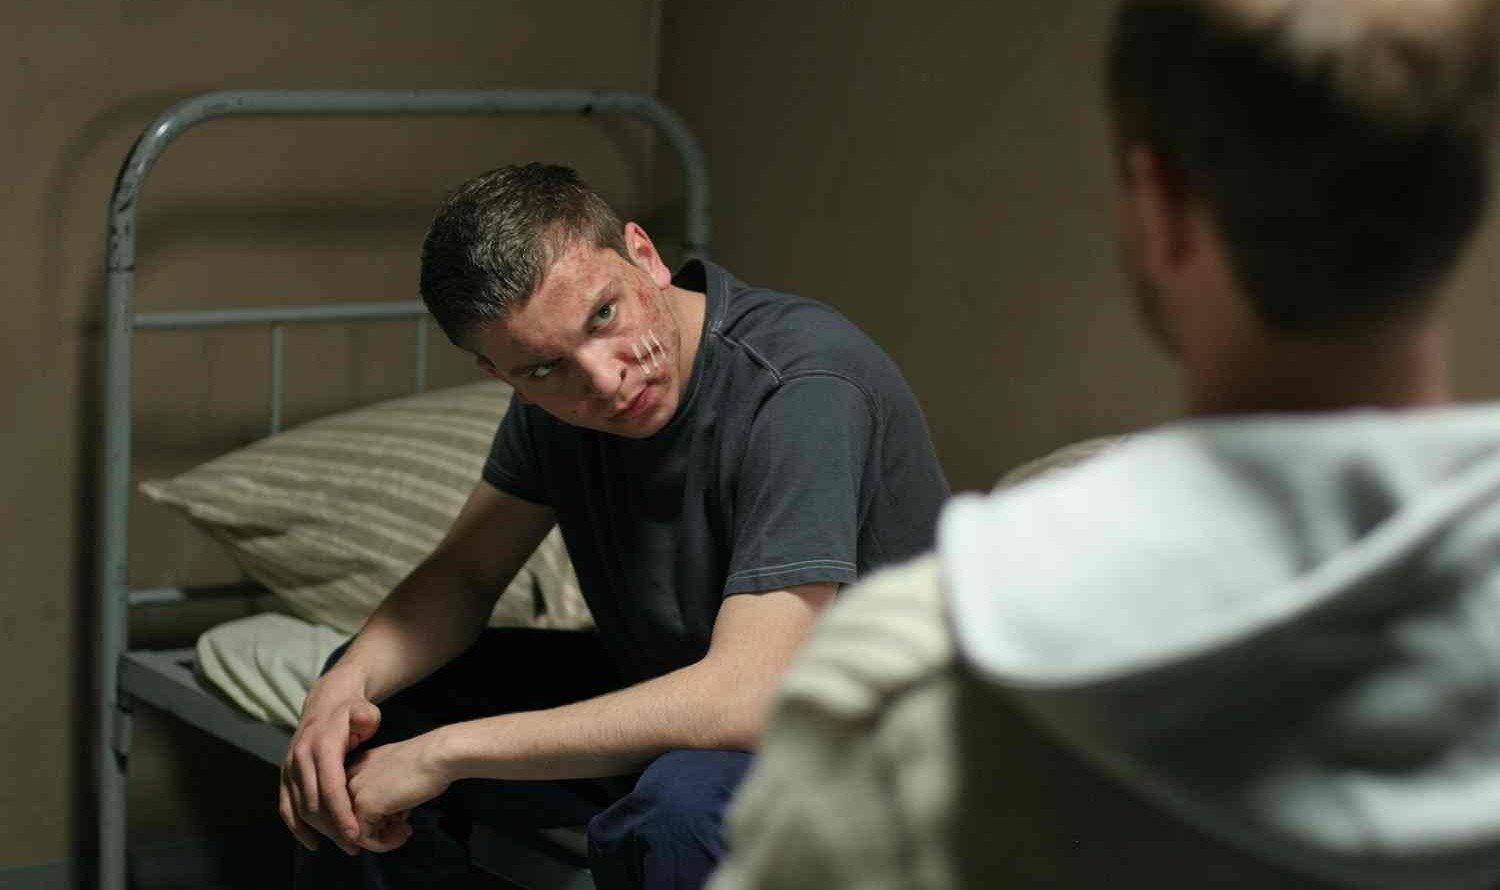 FILM PREVIEW: European Union Film Festival brings insight about young offenders in Shifting the Blame